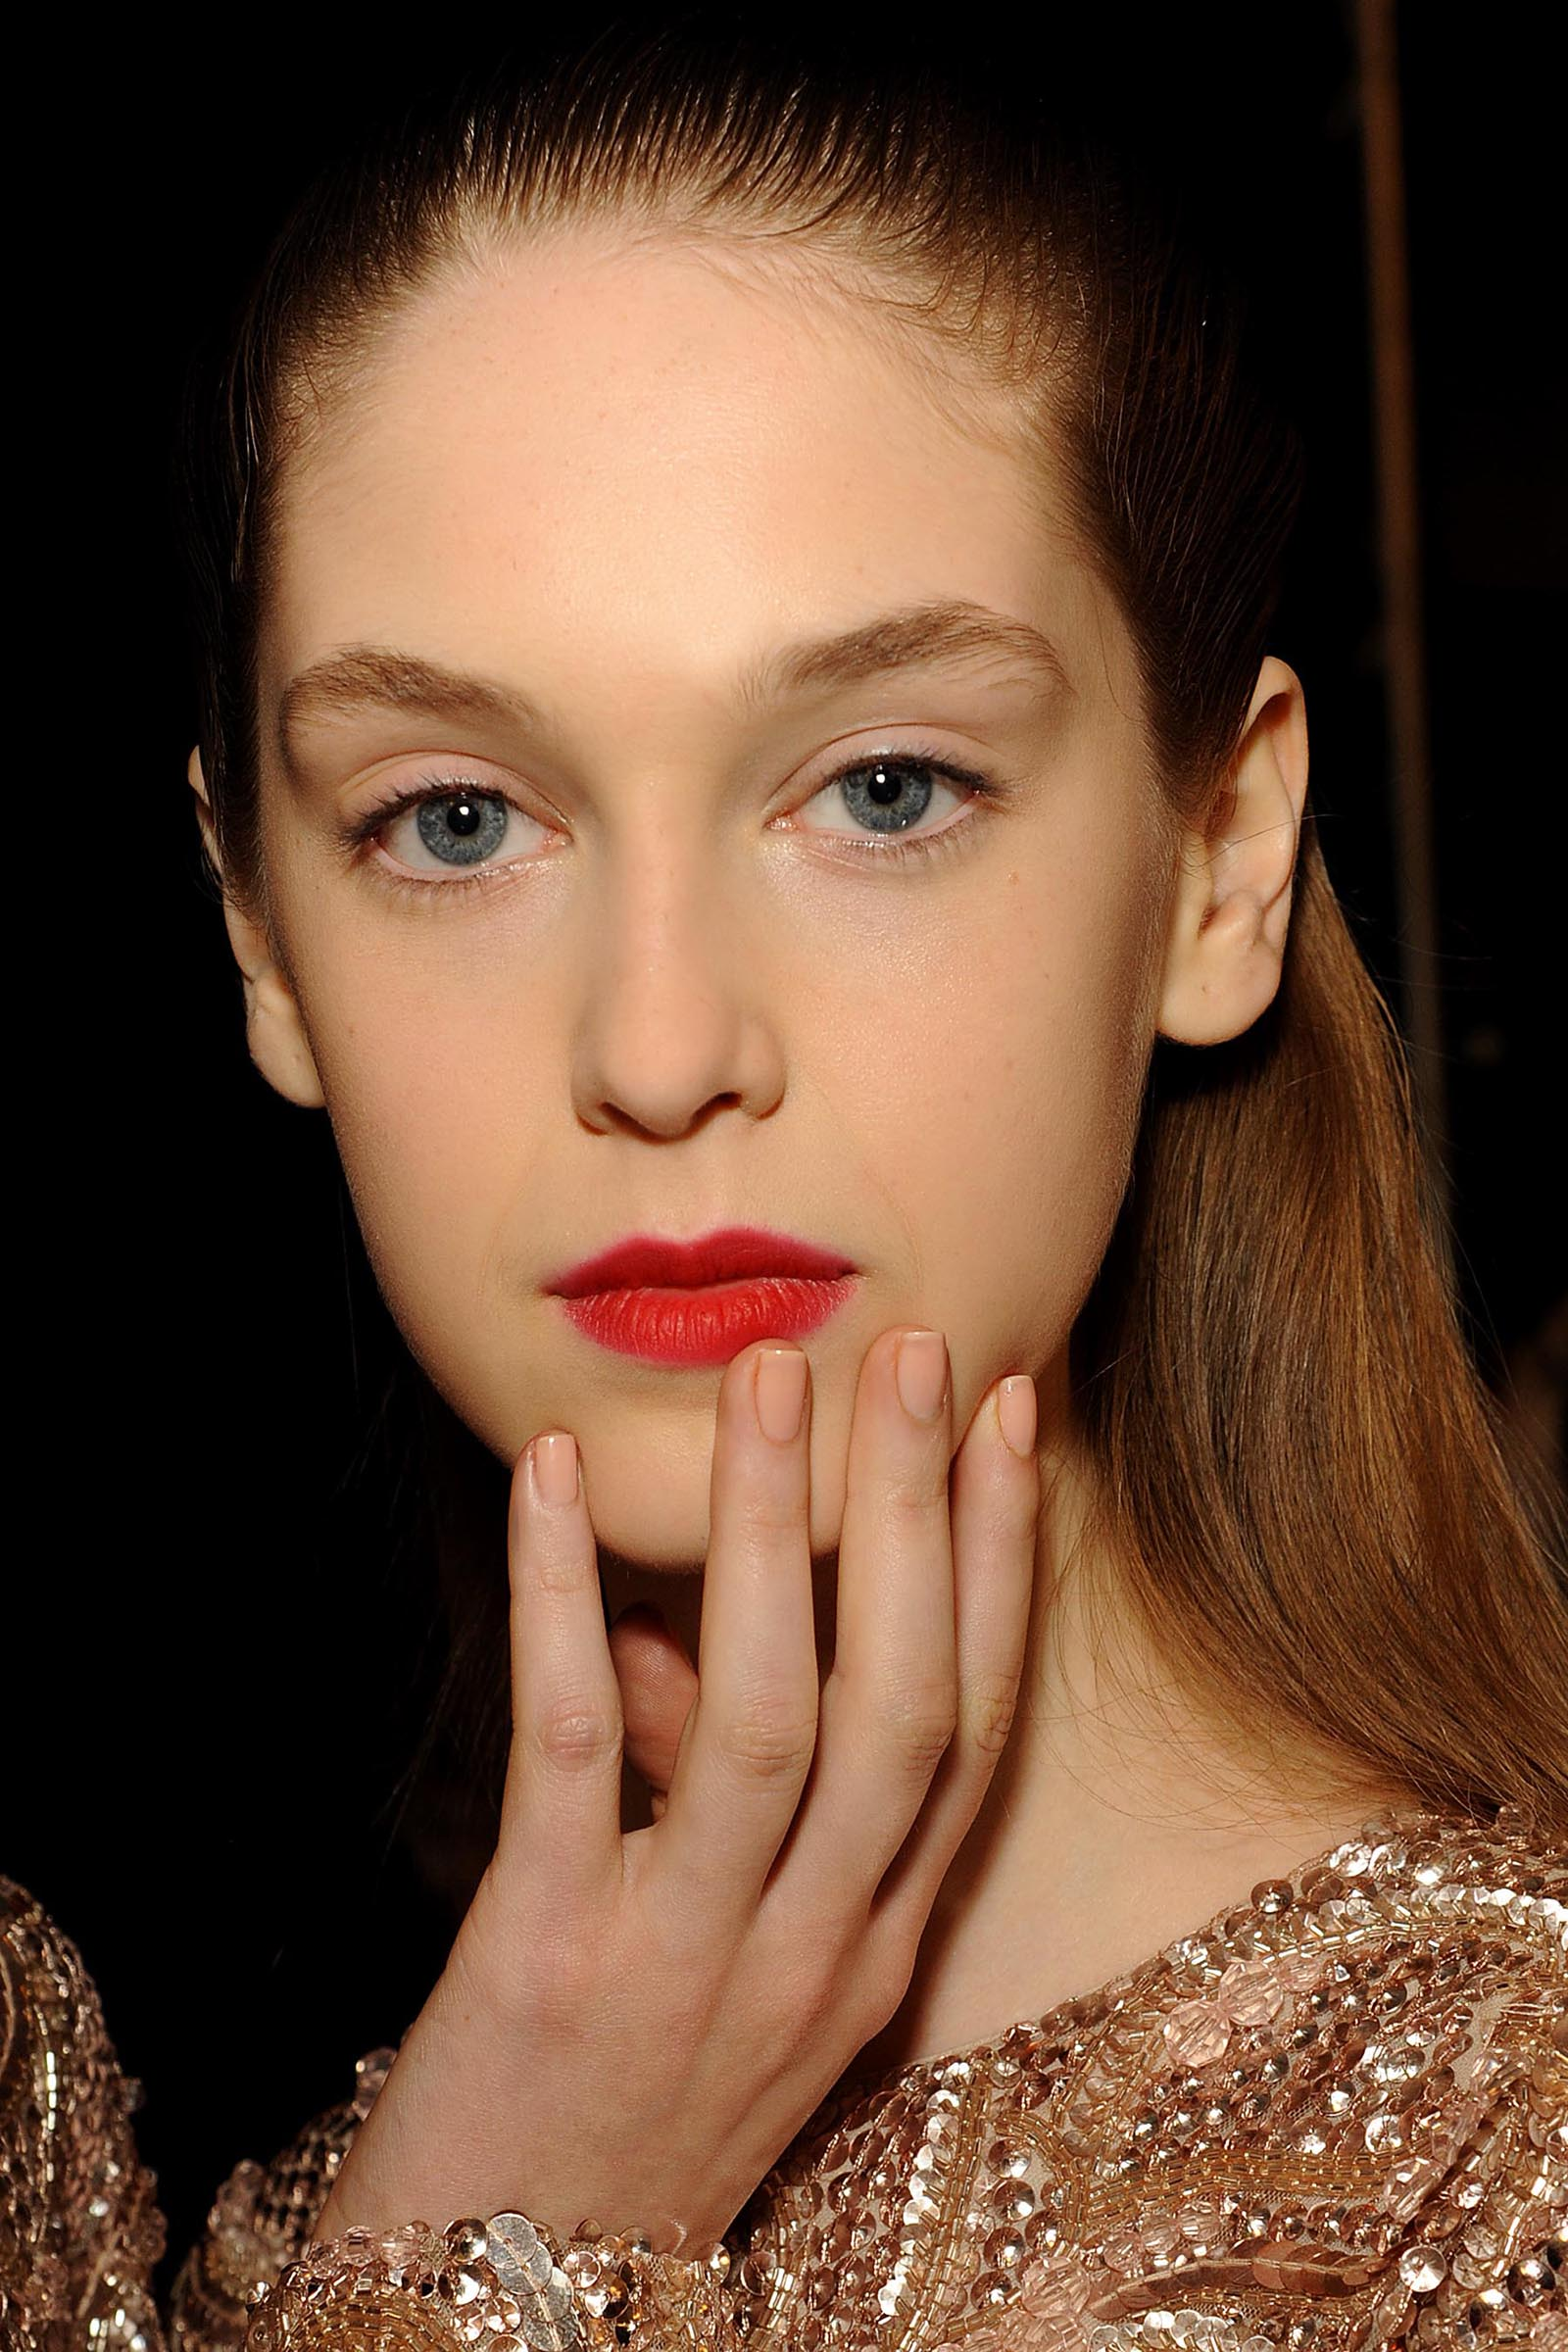 NYFW: Soft, Sheer Nails by butter LONDON on the Monique Lhuillier Runway